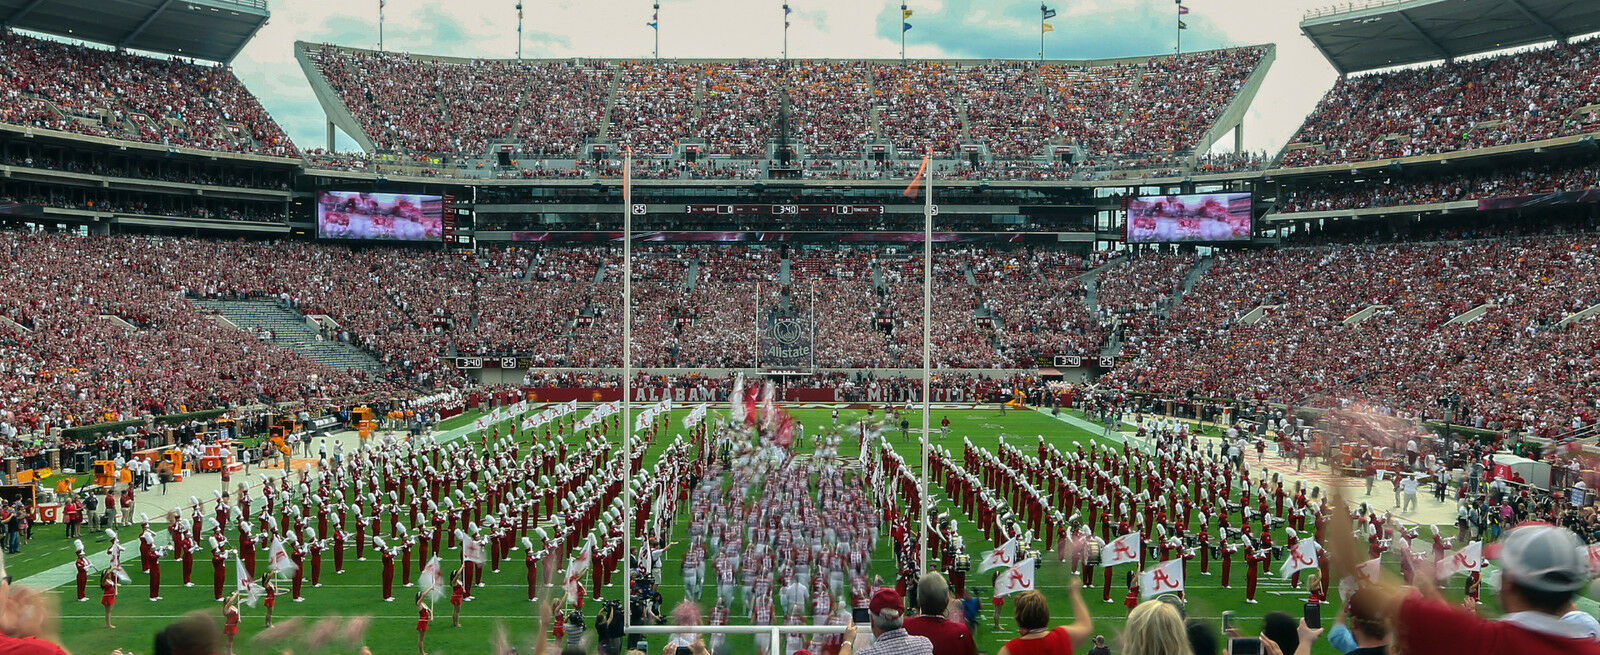 Mississippi State Bulldogs at Alabama Crimson Tide Football